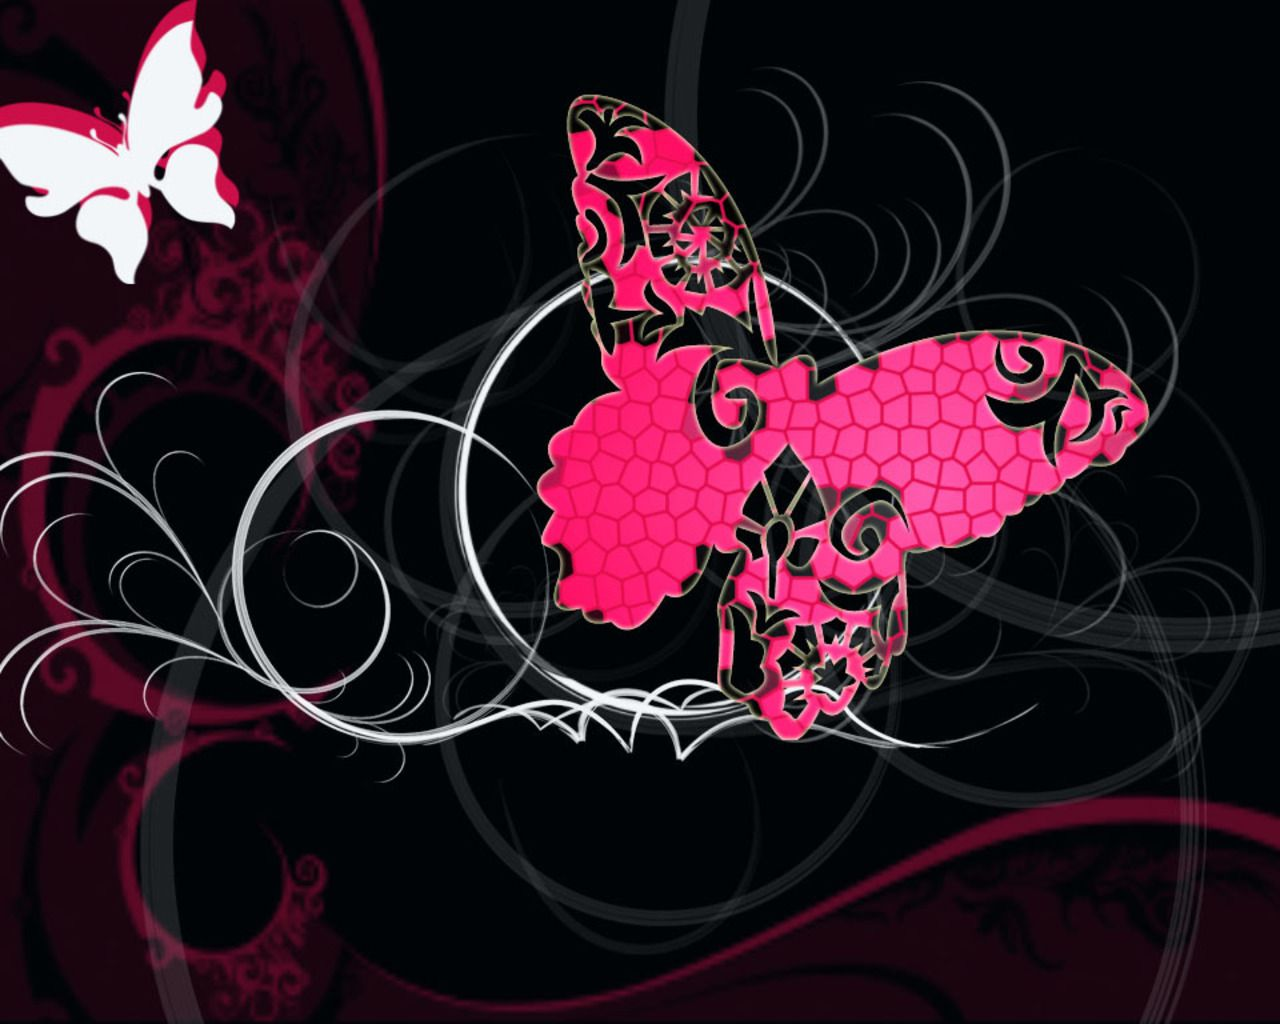 3d Butterfly Wallpaper Desktop Desktop Wallpapers 3d Animated Wallpaper Wallery Desktop Slid Pink And Black Wallpaper Butterfly Art Butterfly Wallpaper